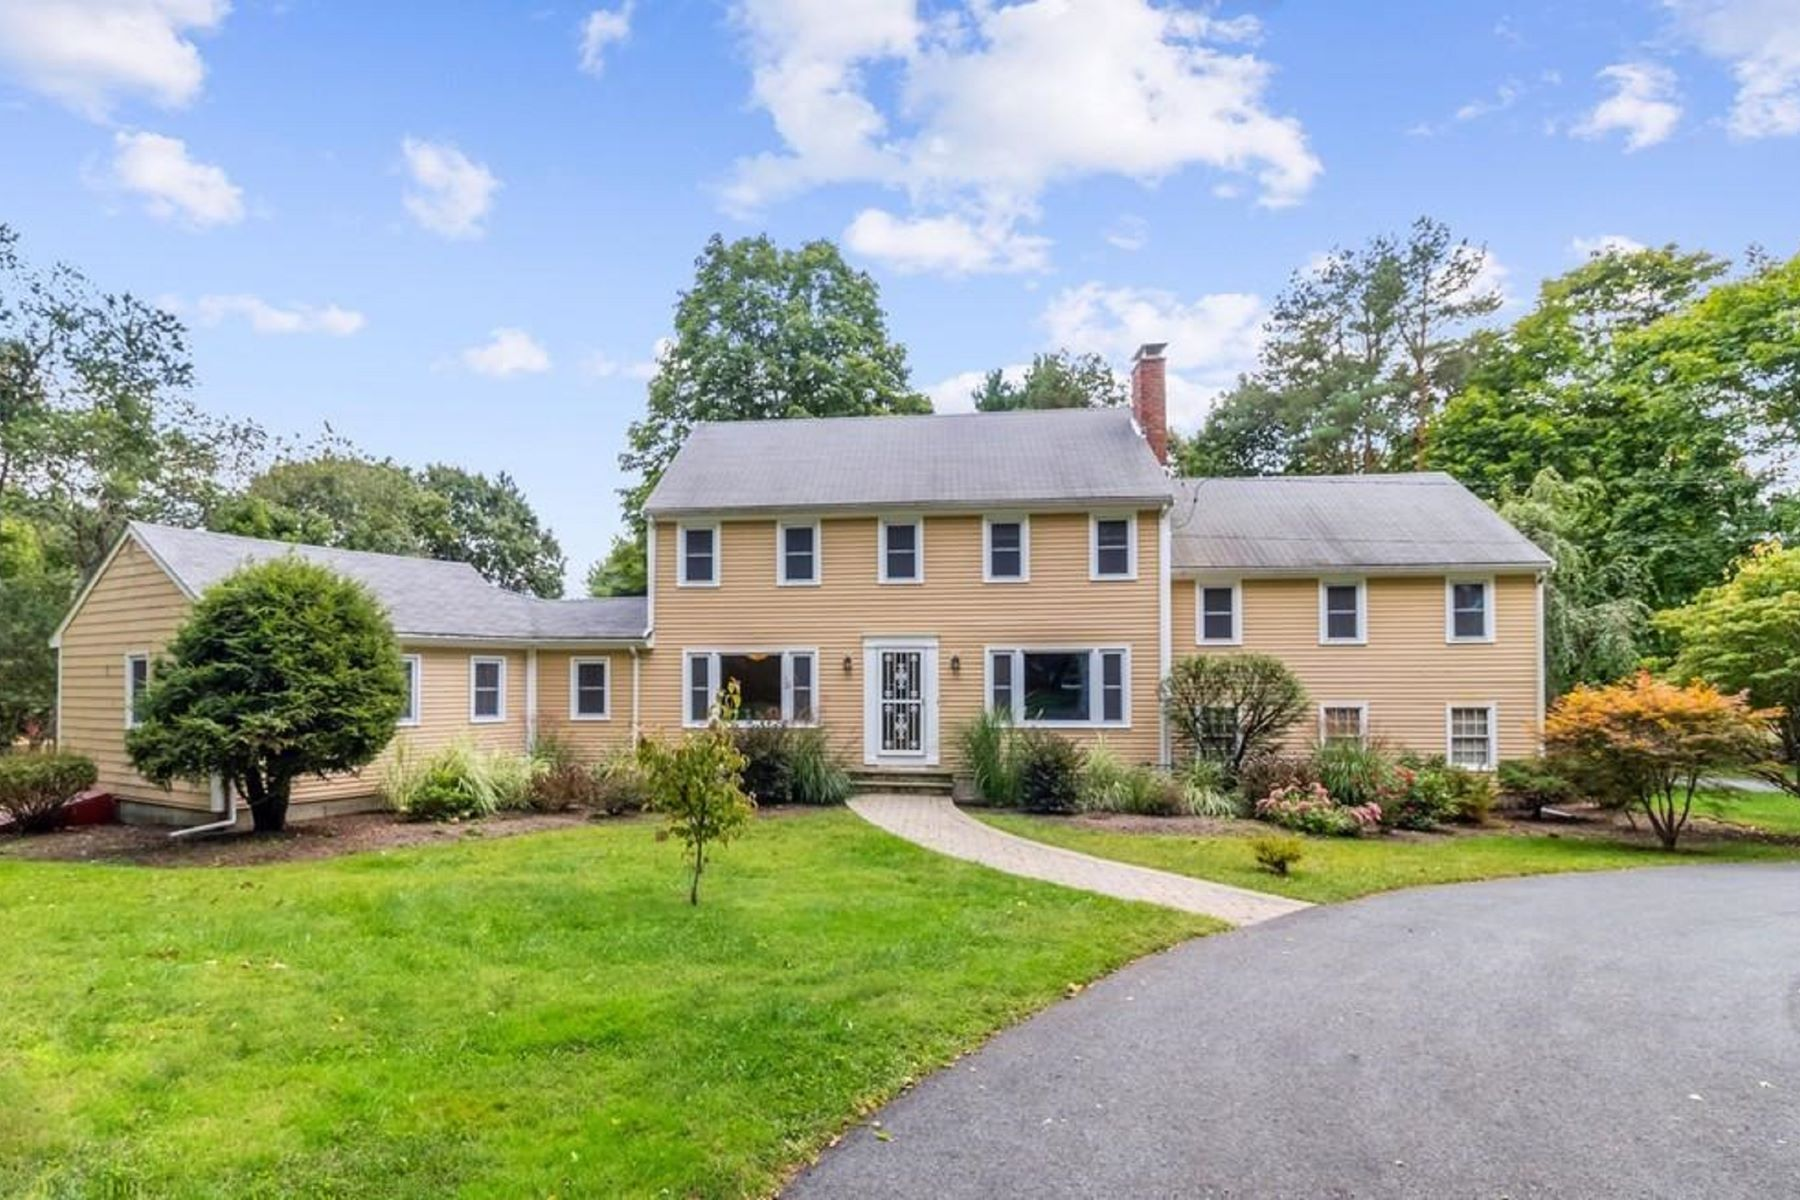 Apartments for Sale at 11 Kings Grant Road 11 Weston, Massachusetts 02493 United States